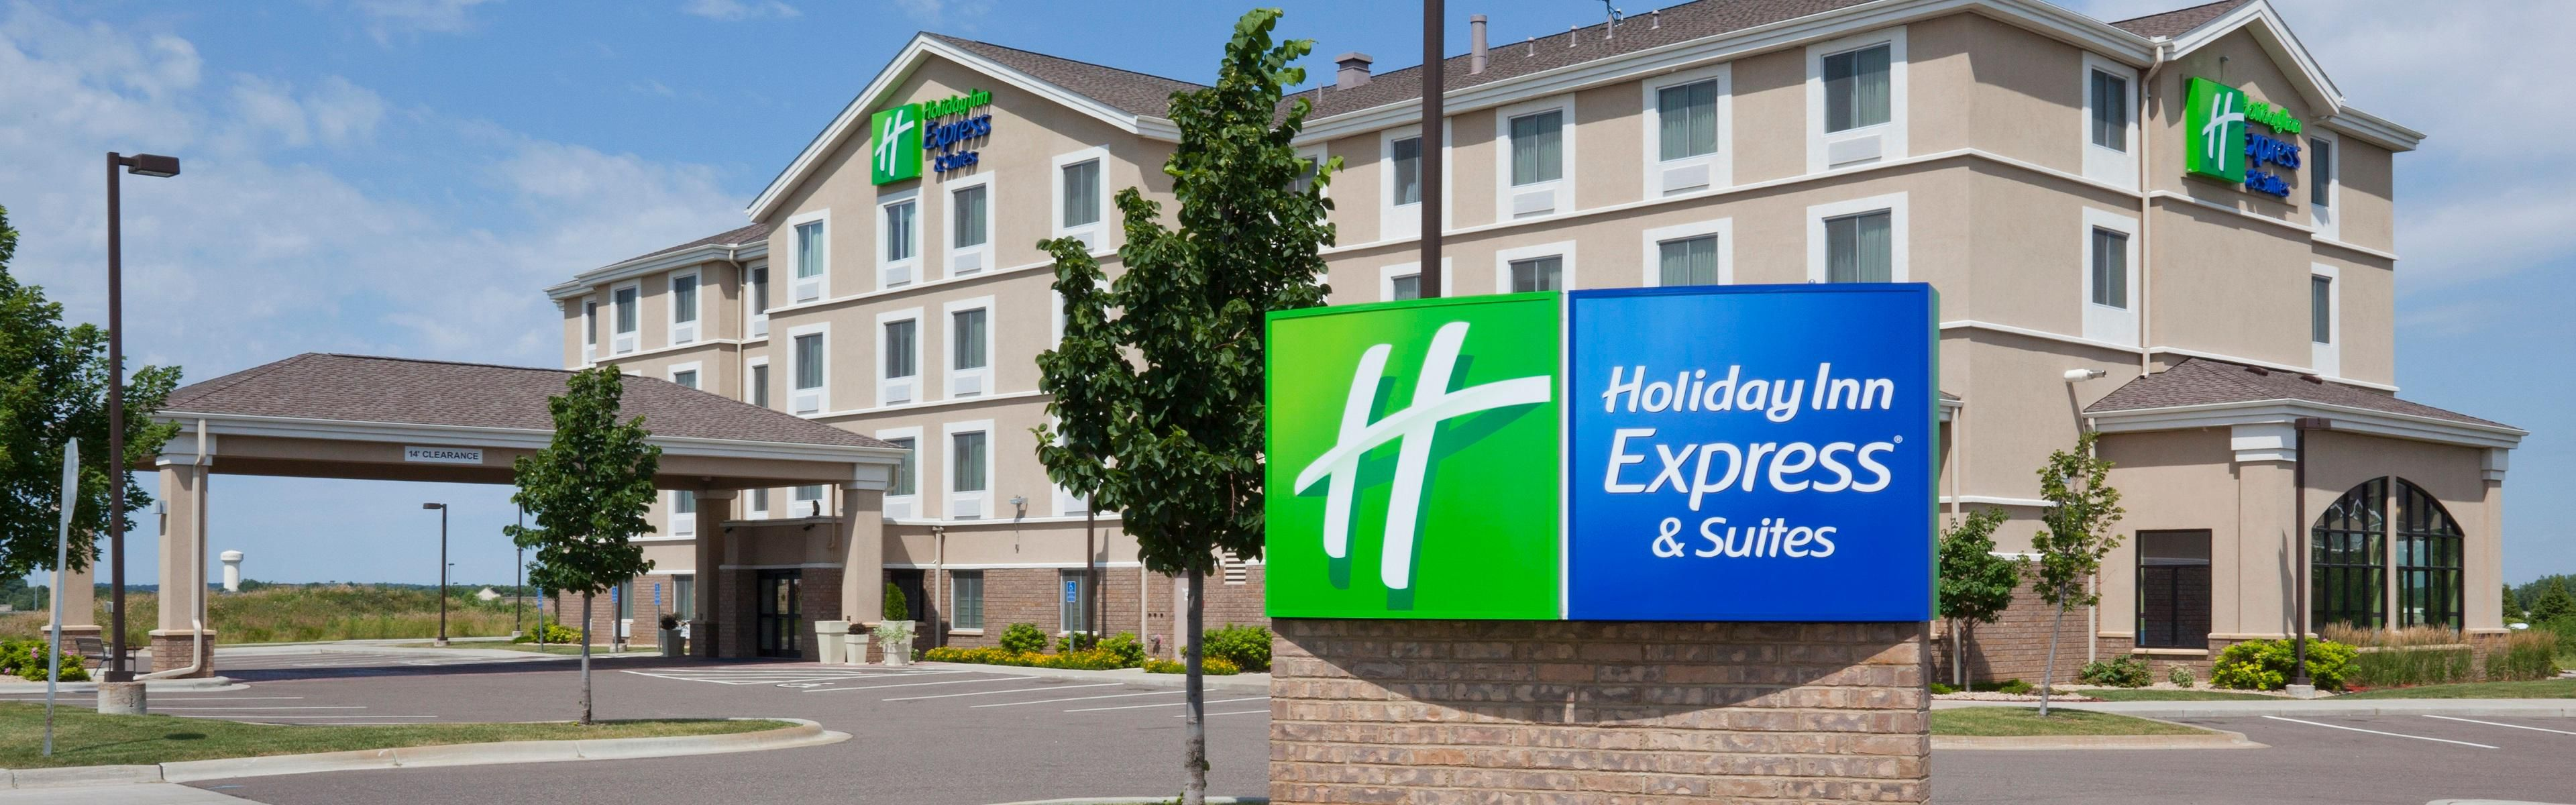 Holiday Inn Express & Suites Rogers image 0